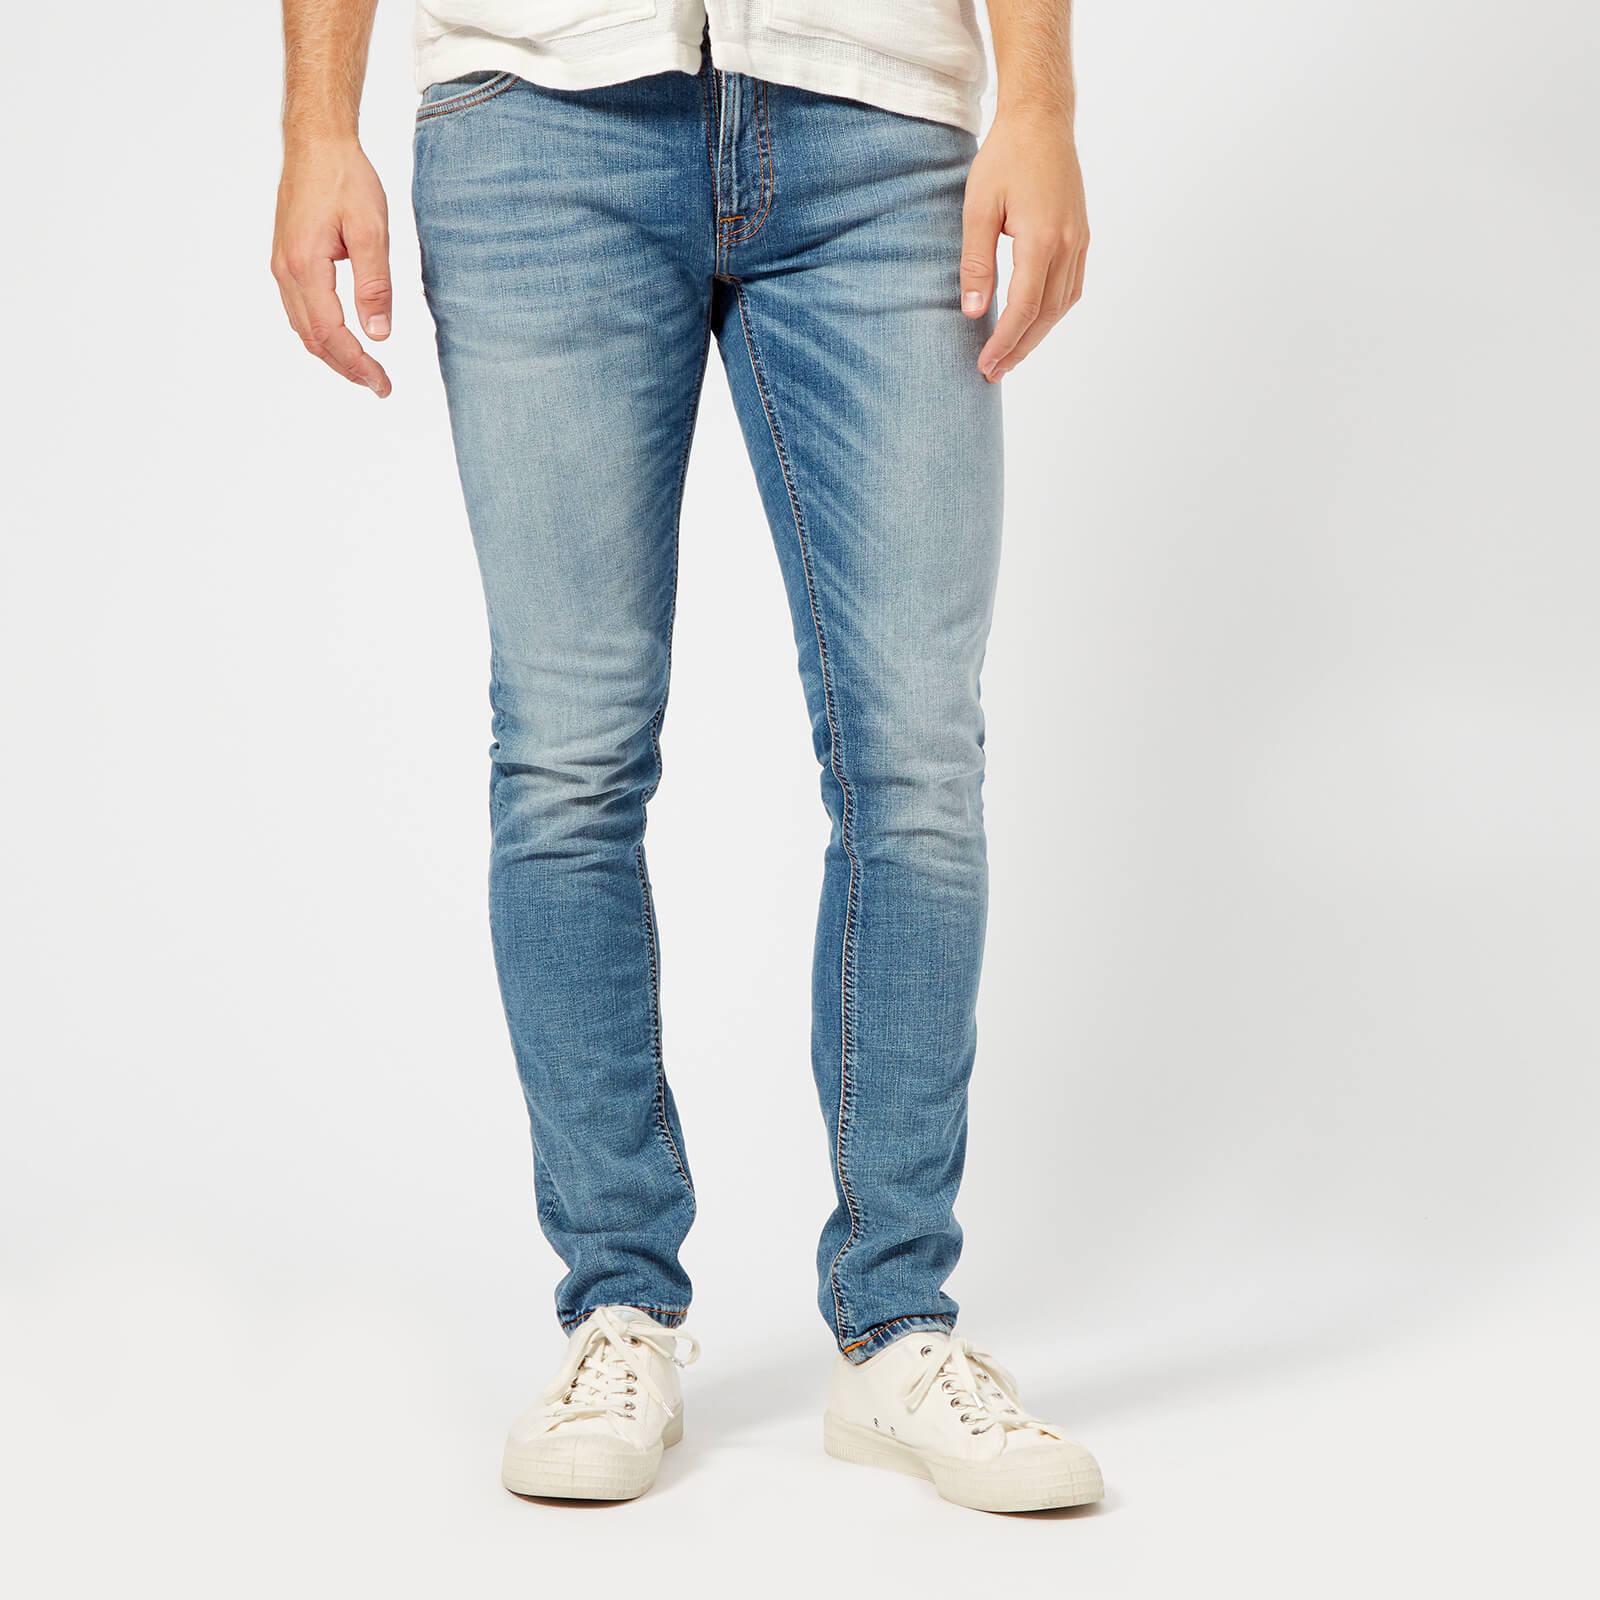 00d33c00ae67 Nudie Jeans Men s Skinny Lin Jeans - Slowly Worn - Free UK Delivery over £50